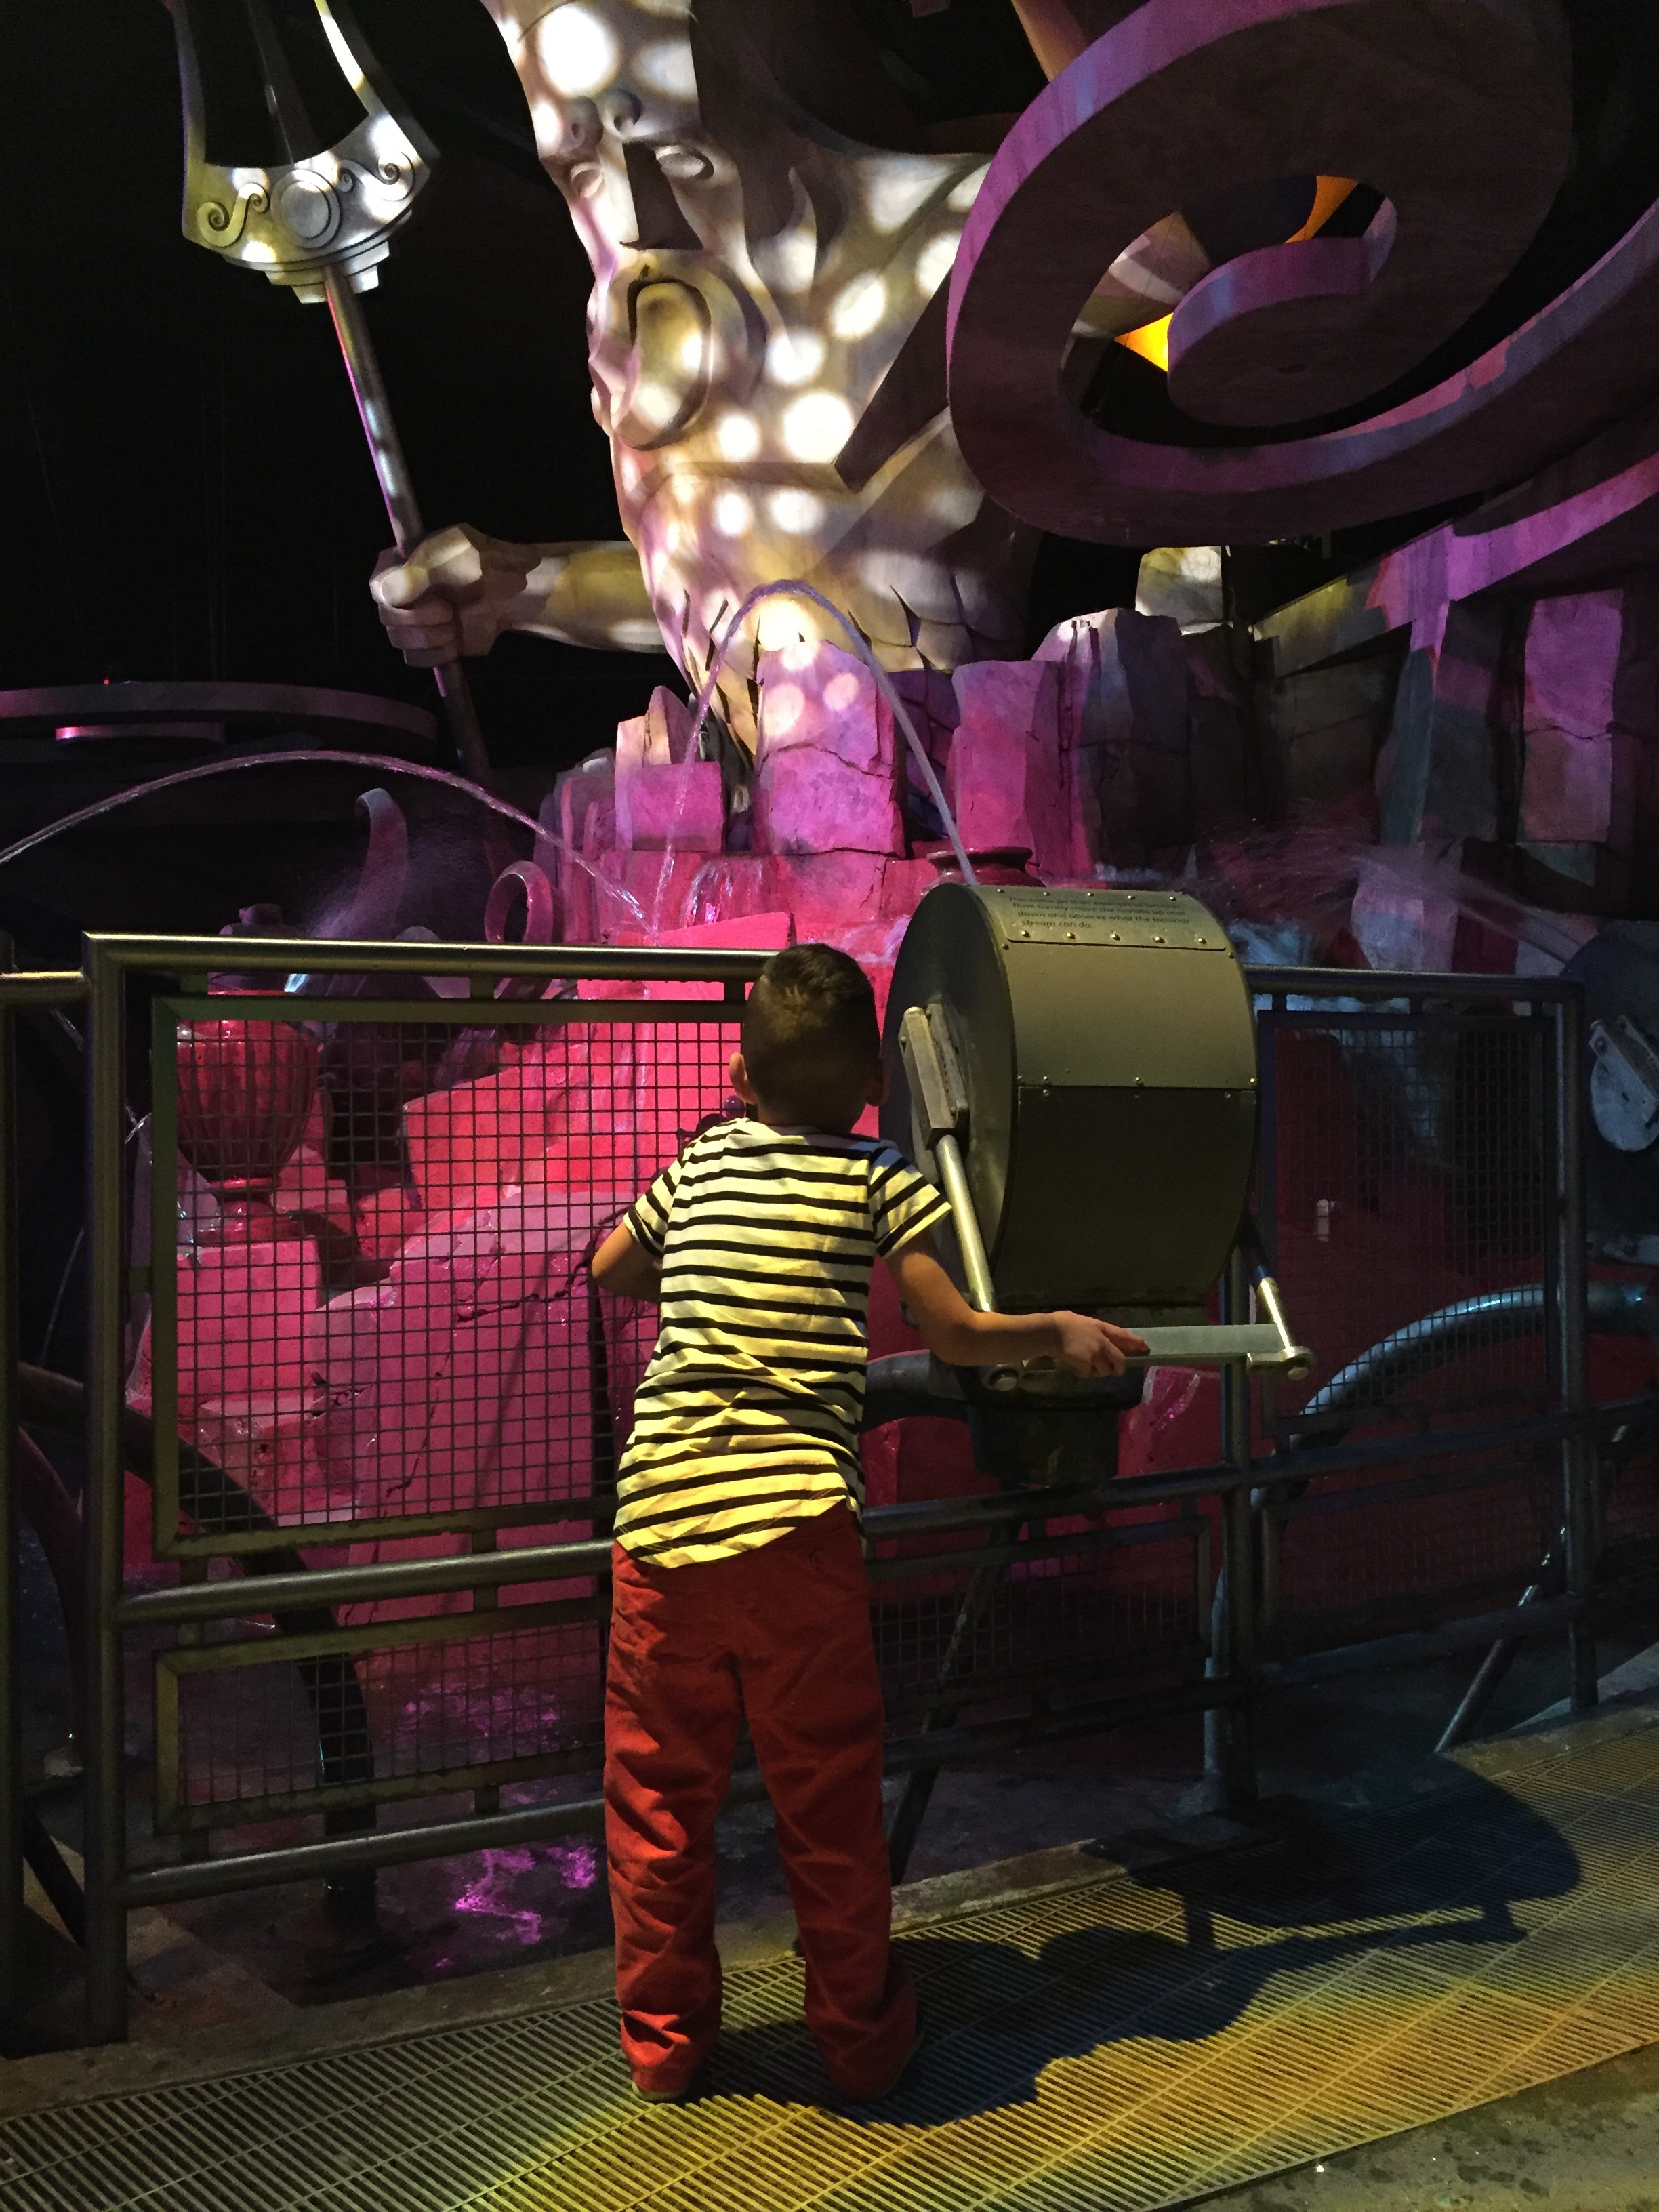 Sunday funday at  COSI  . It's great to have fun indoors when it's so unexpectedly chilly!